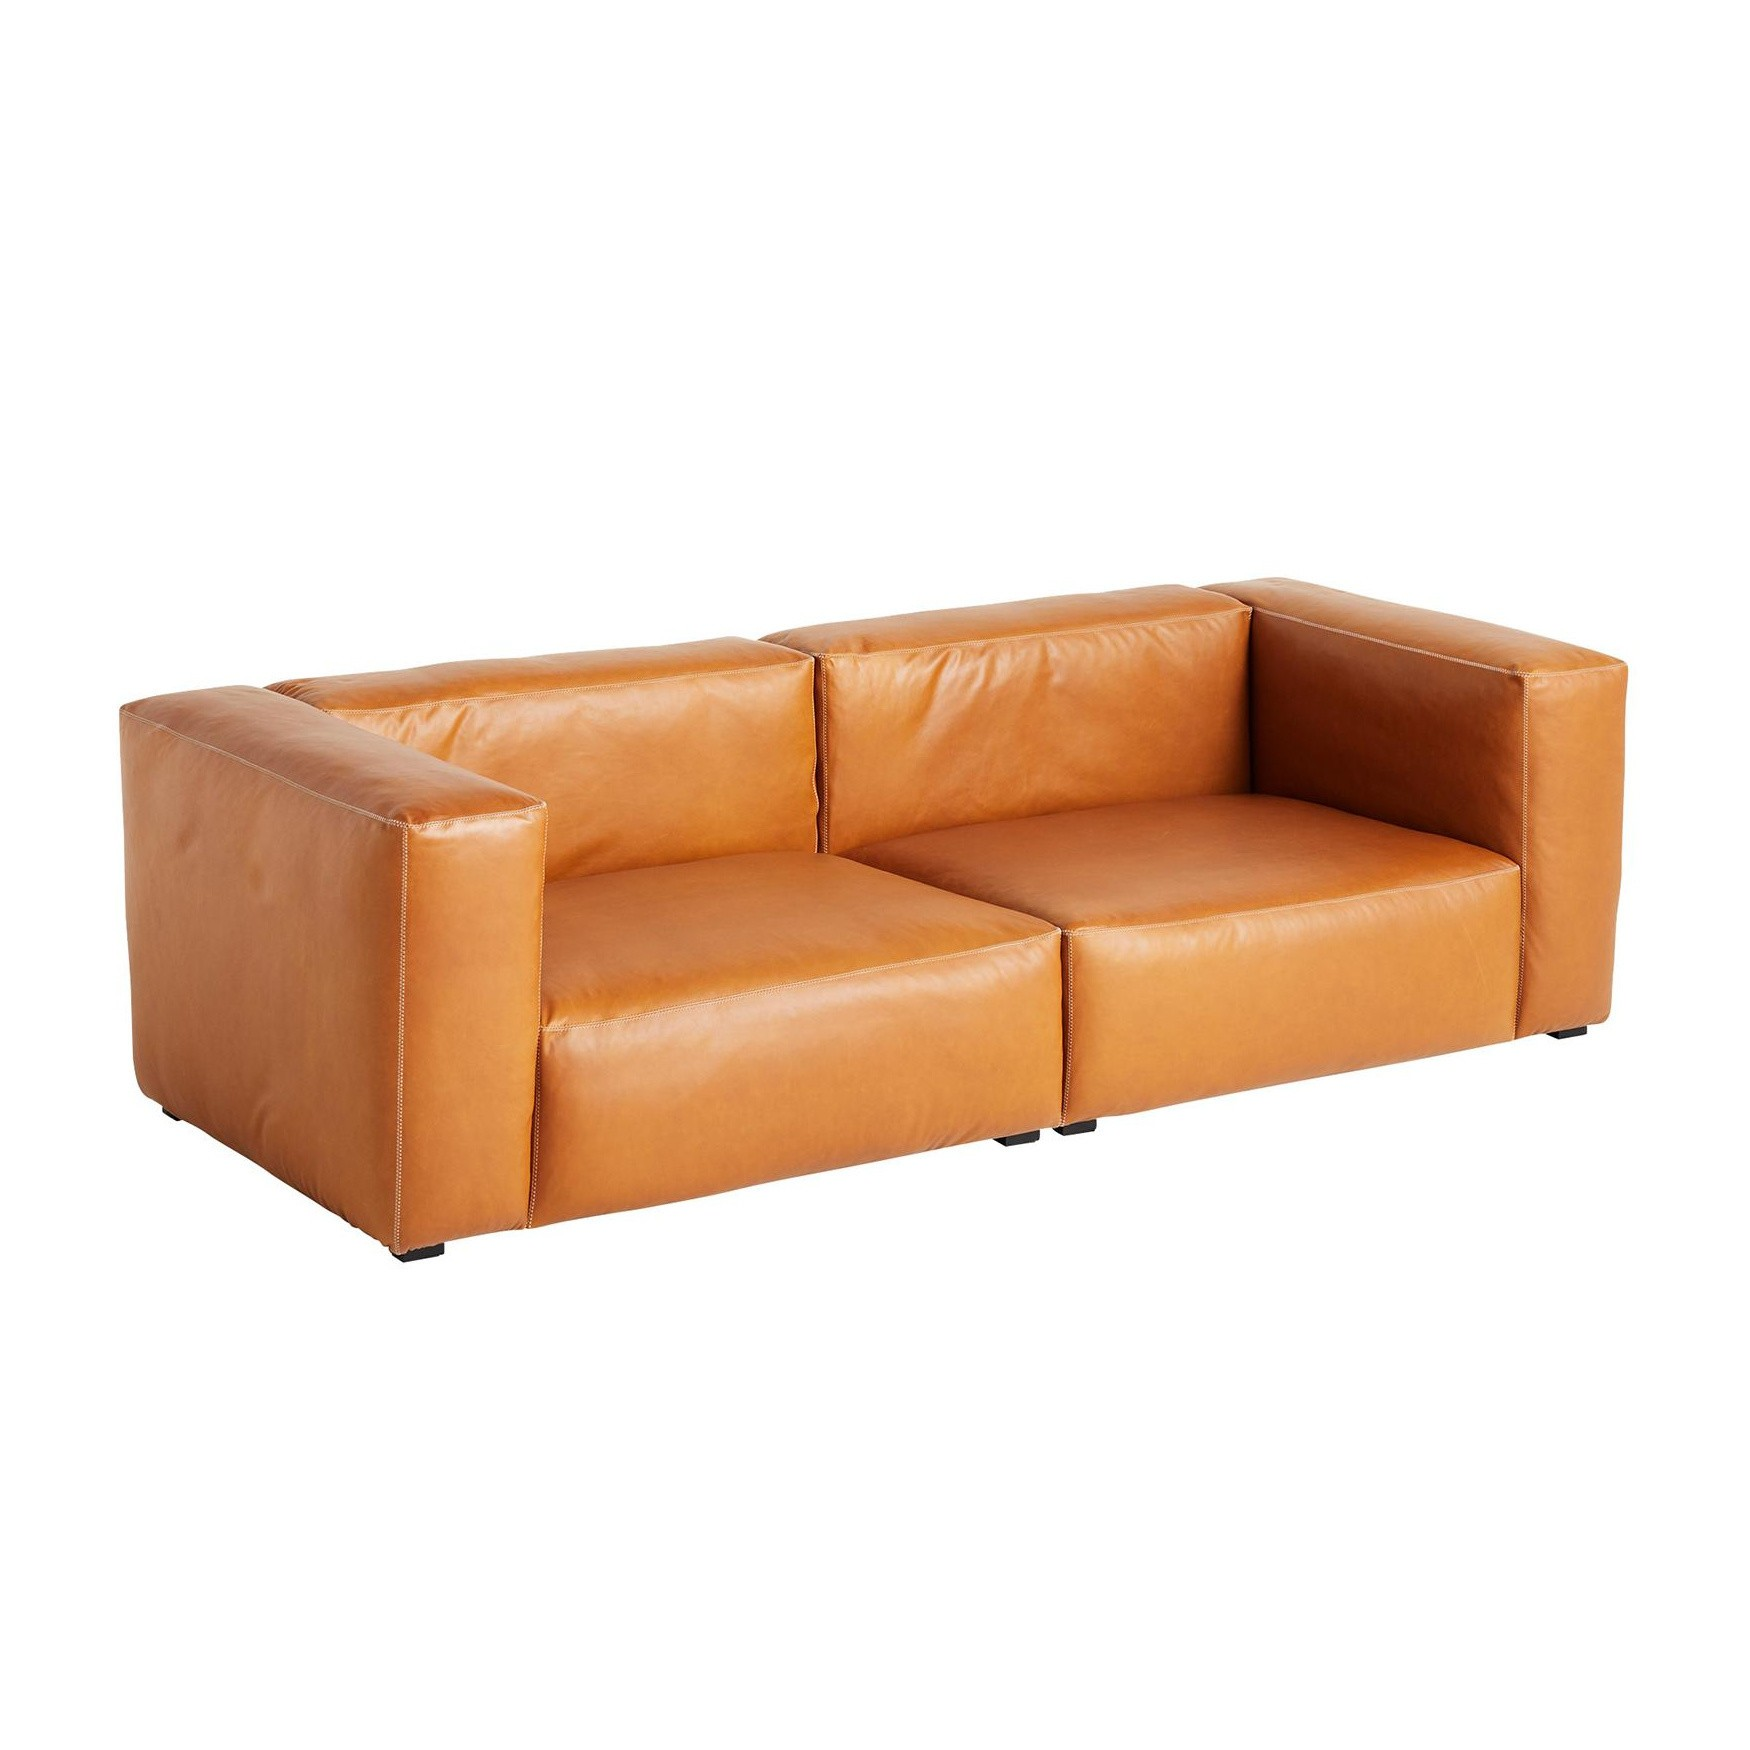 Hay Mags Soft 2 5 Seater Sofa Leather 238x103 5x67cm Ambientedirect